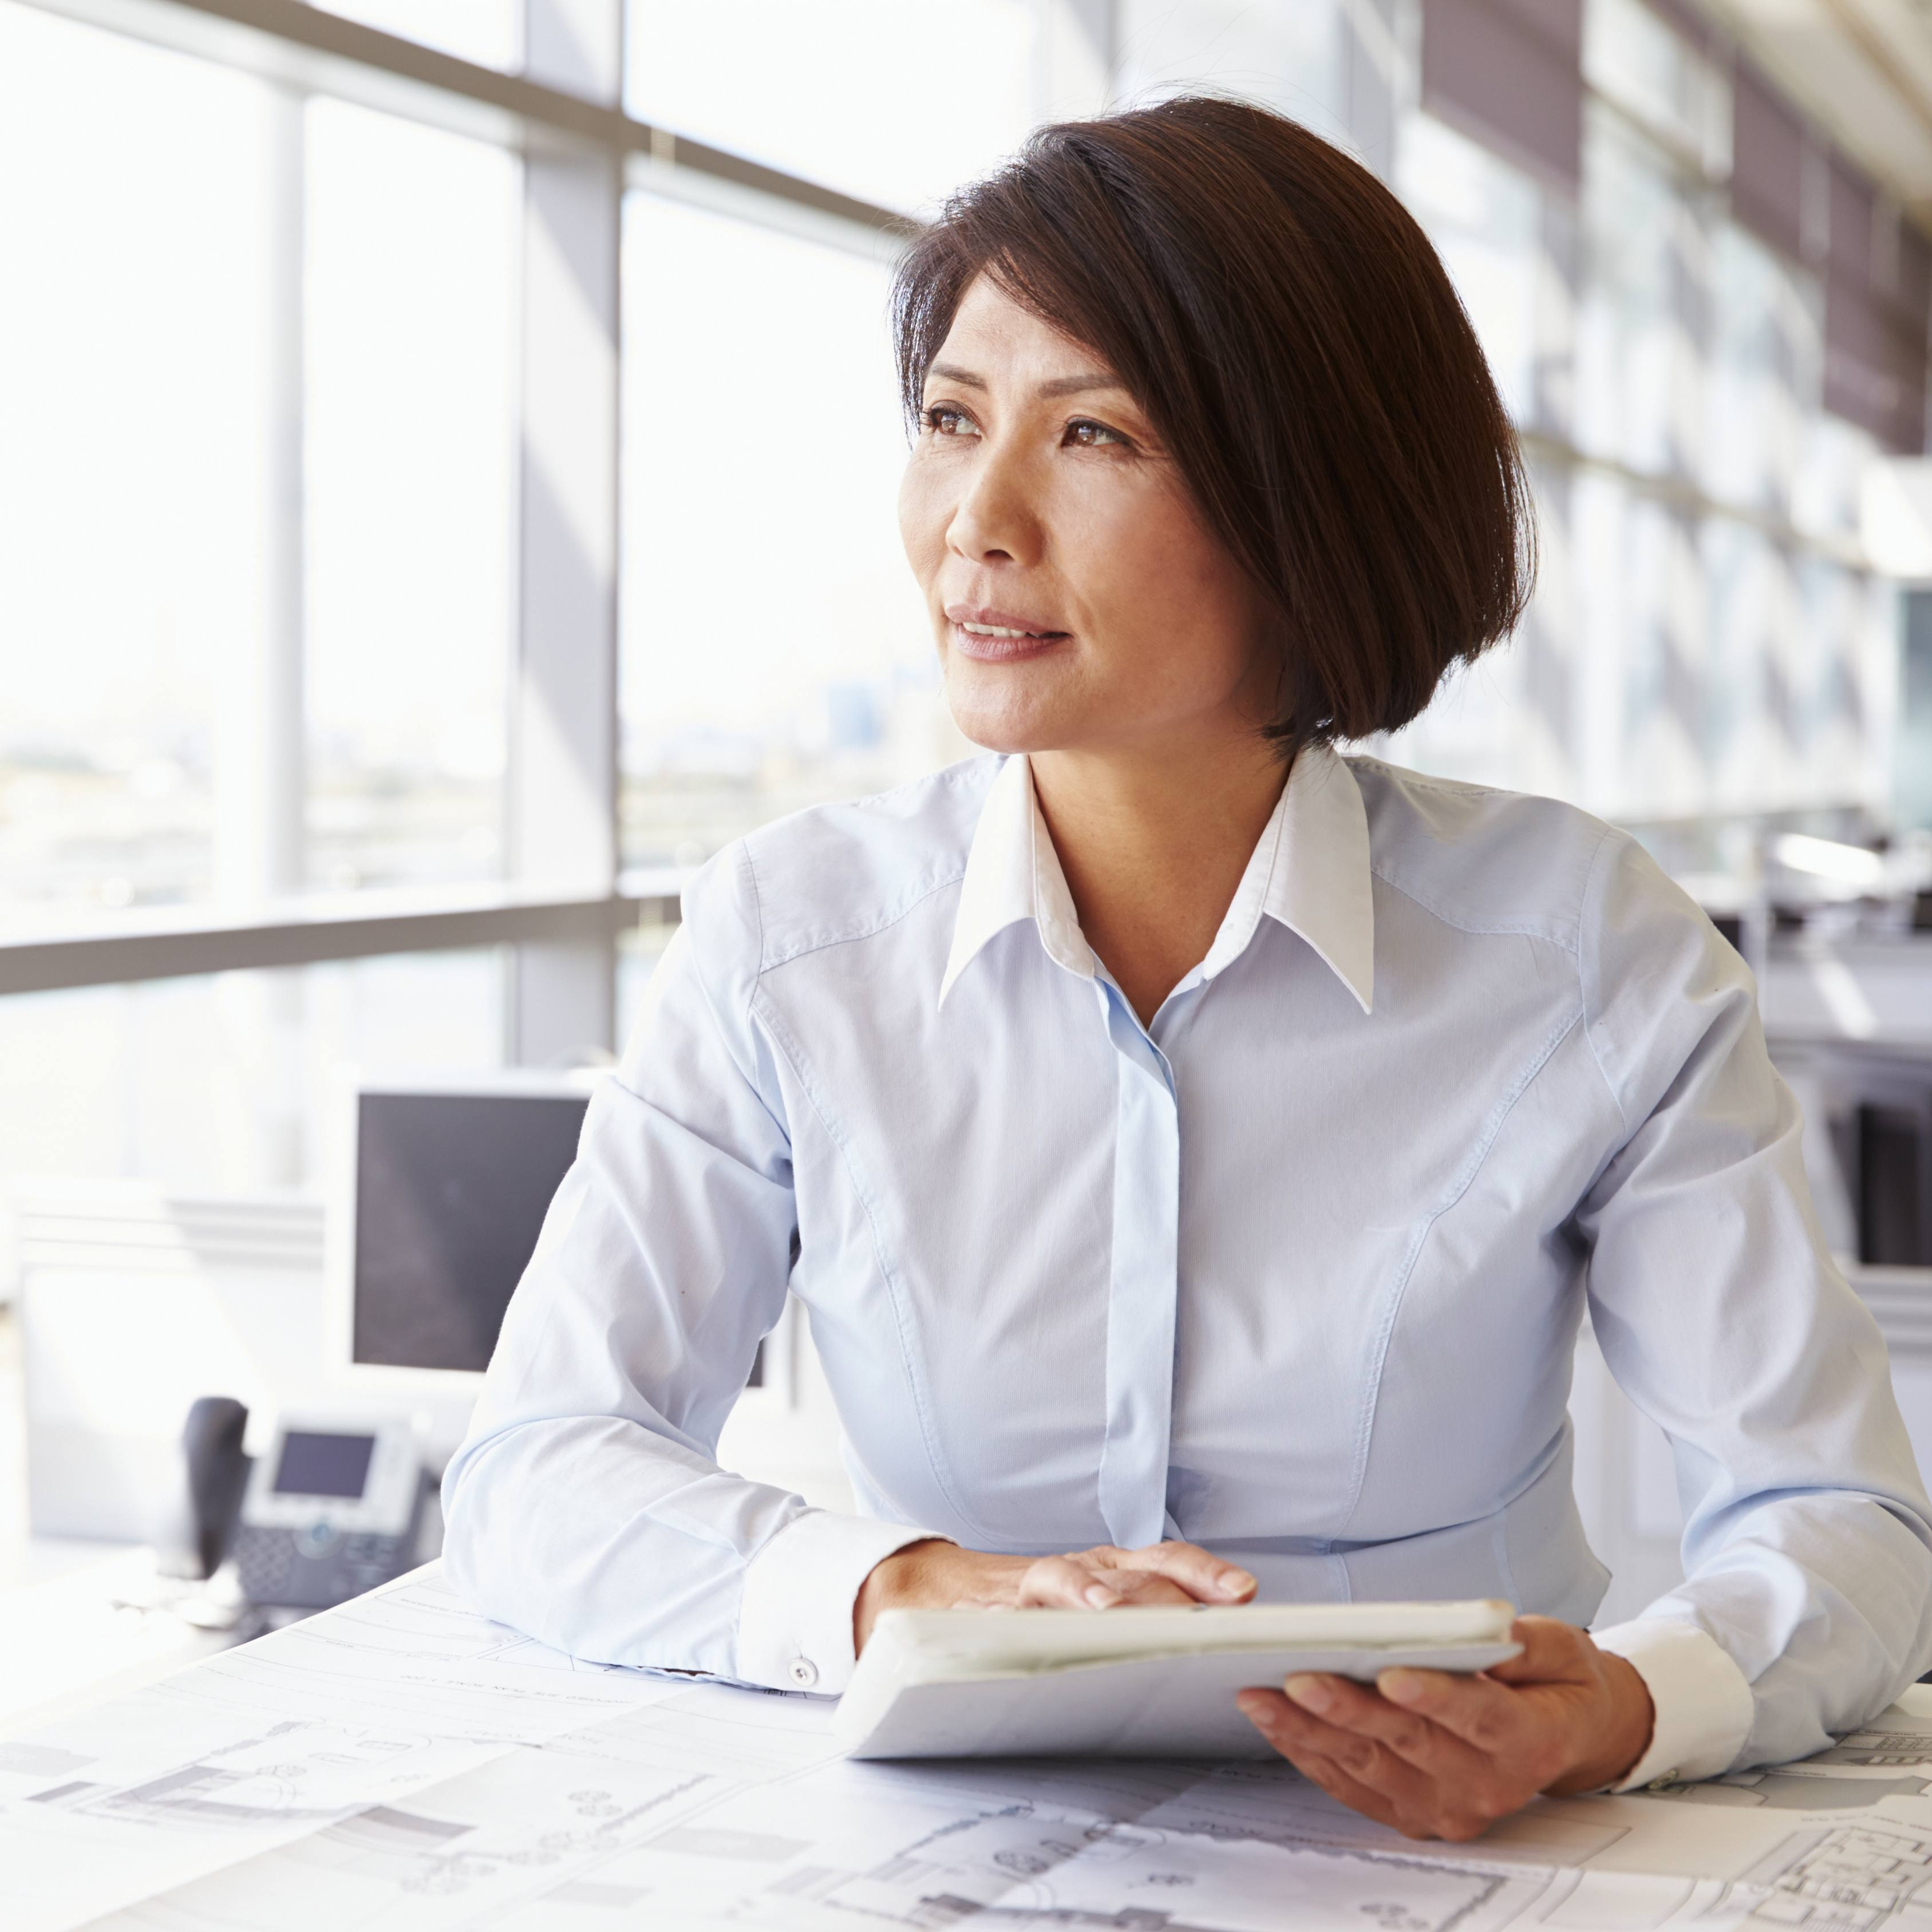 a middle-aged women sitting a an office table, holding an ipad and looking out a window